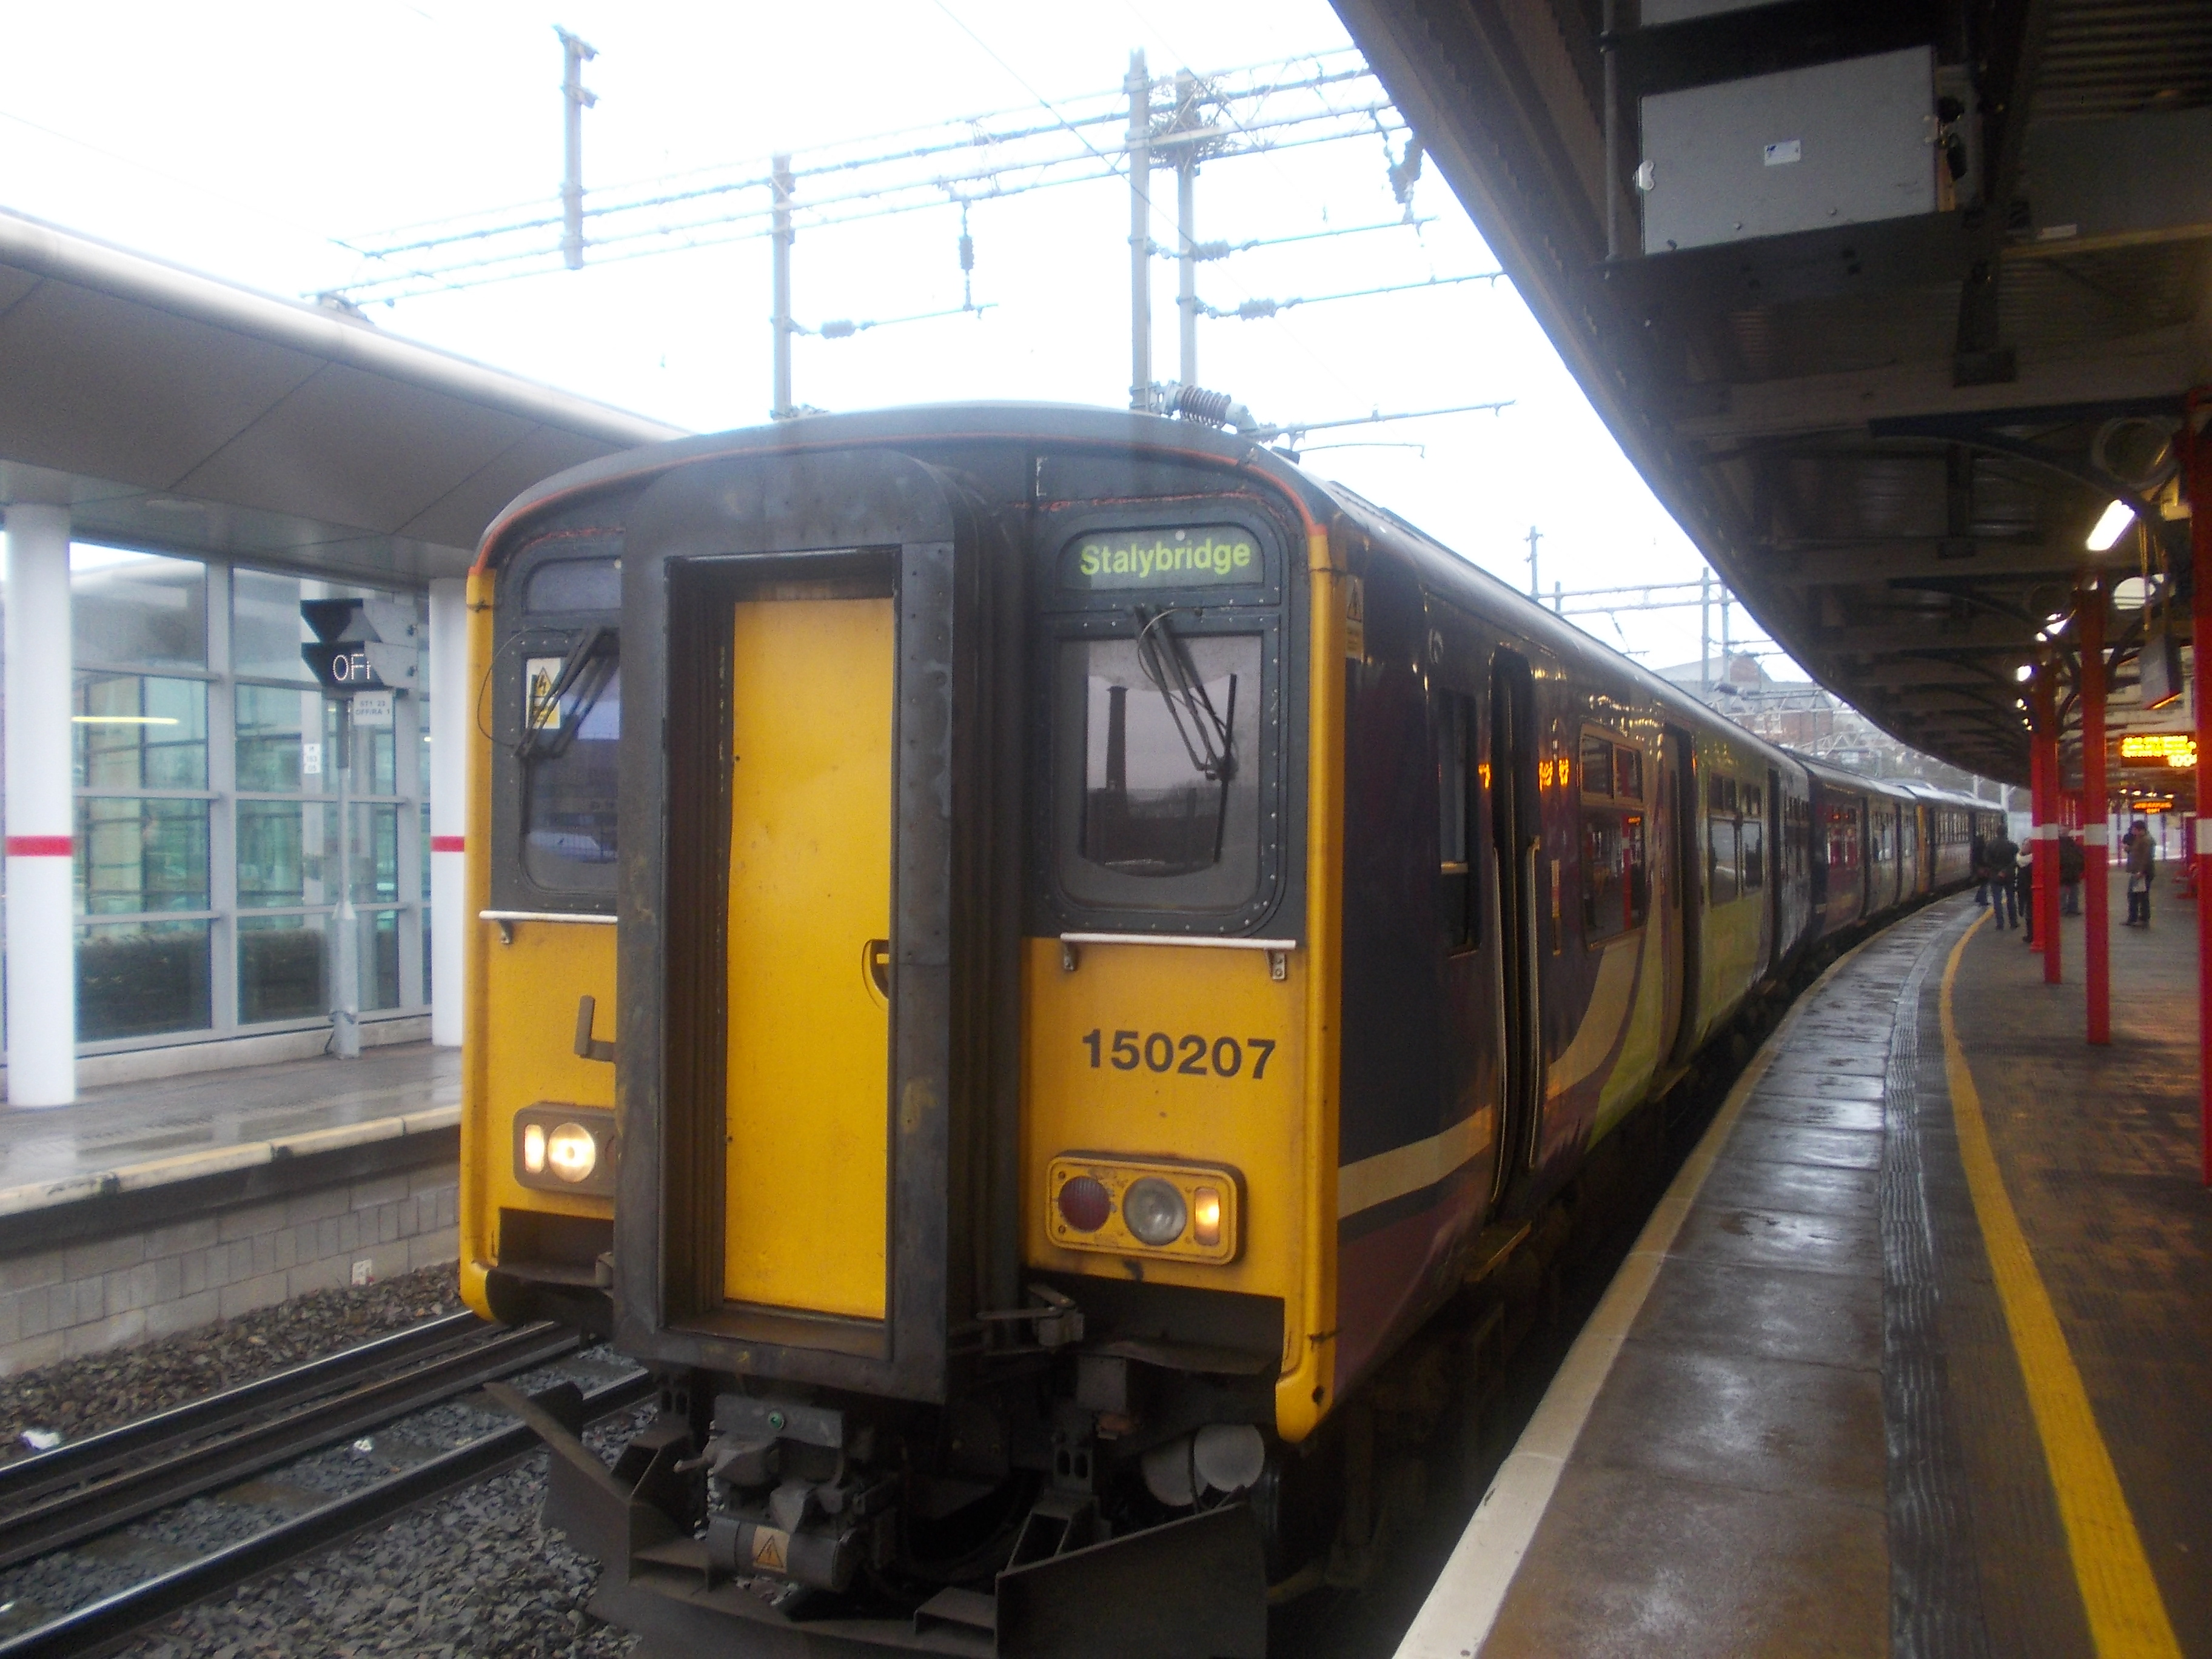 150207 at Stockport, about to work the 10:13 Denton Flyer service to Stalybridge. It had been switched from platform 3A to platform 1 about 10 mins be